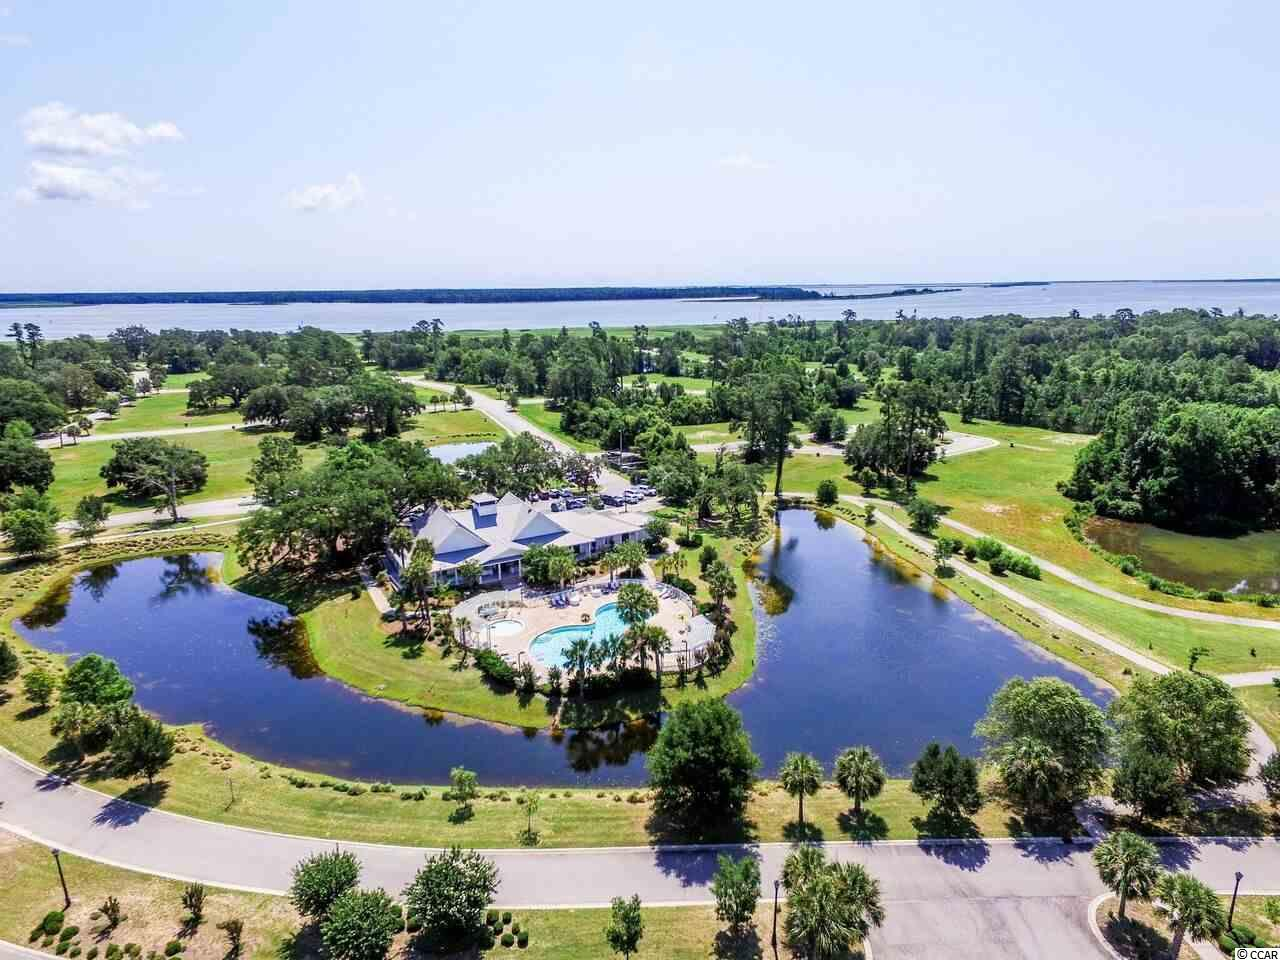 South Island Plantation...A gated community located along Winyah Bay and the Intracoastal Waterway, near Historic Georgetown, SC.  Community amenities include a pool, kiddie pool and hot tub. There is also a 5000 sq ft club house with an equipped fitness center, a bar and a full kitchen.  Walking trails wind throughout the community with gazebos for periodic resting. A fishing/crabbin' gazebo are now complete.  A secured RV/ Boat storage area is available for property owners.  Huge oaks and beautiful ponds make this one of the premier communities in the area.  Build your dream home today....